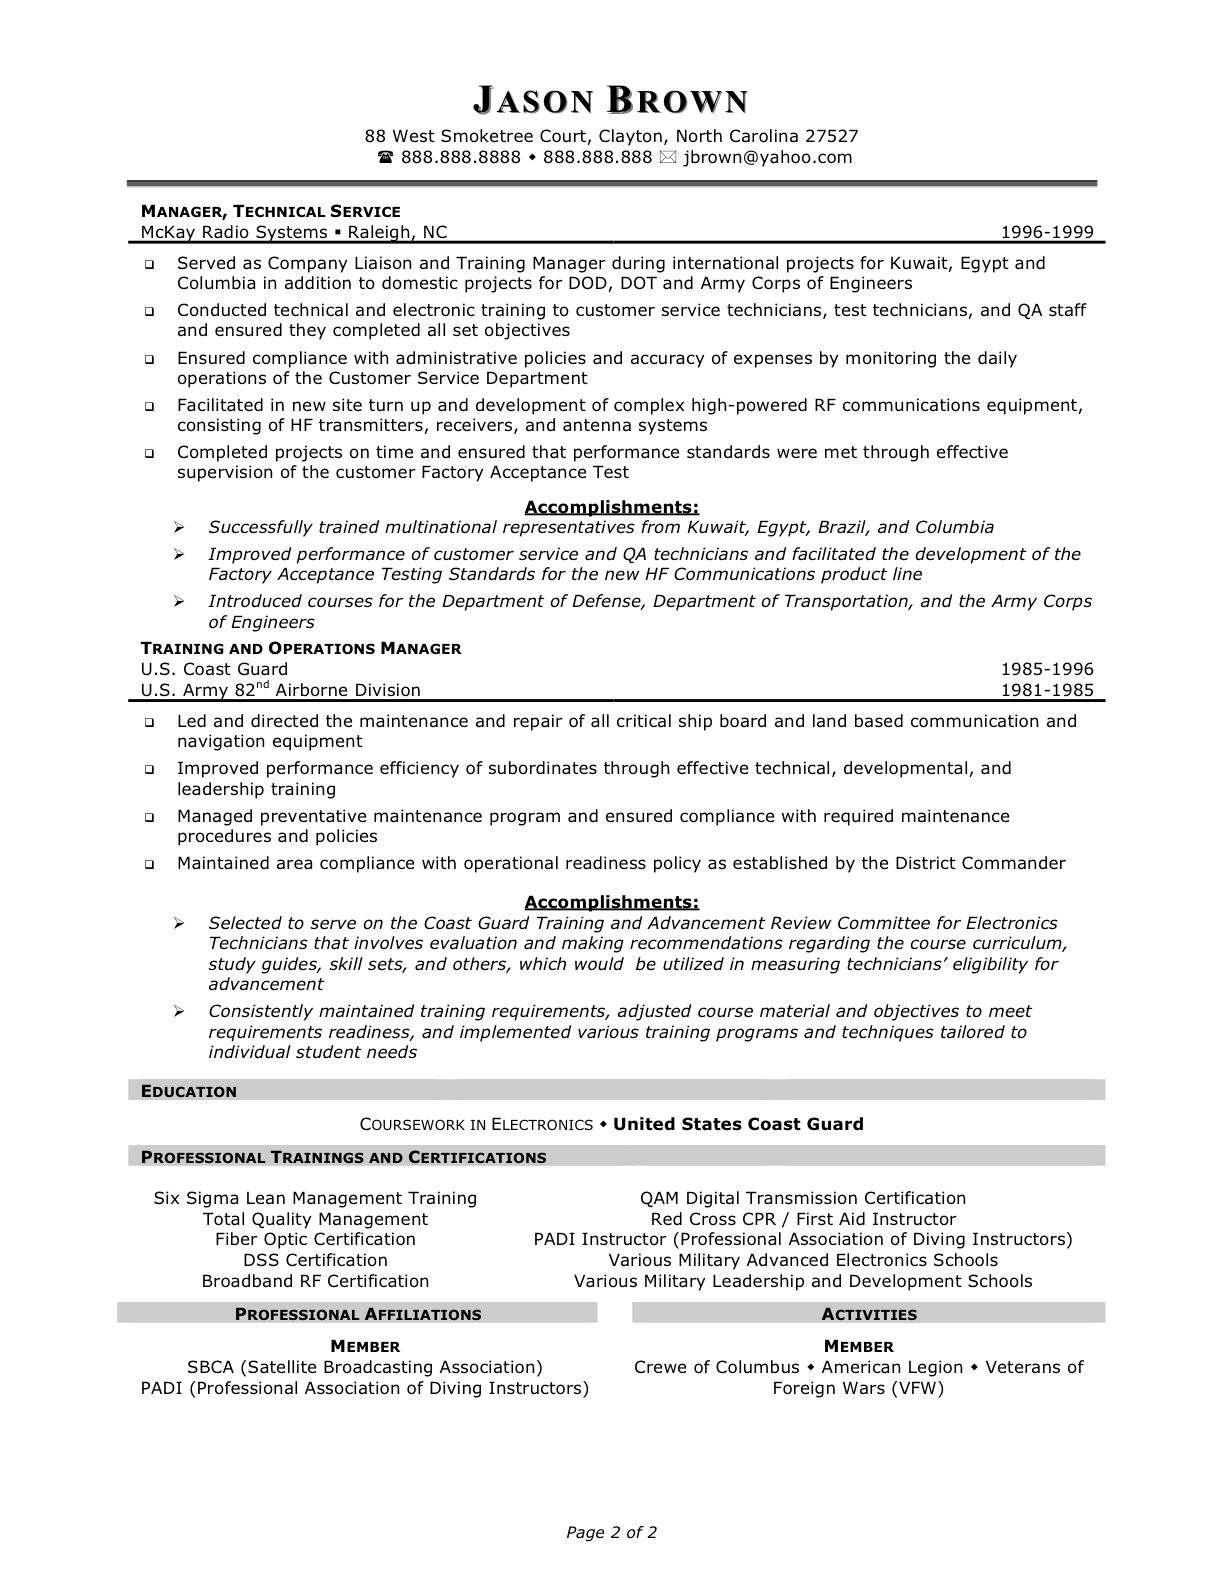 Office Manager Resume Objective Enterprise Management Trainee Program Resume  Httpwww